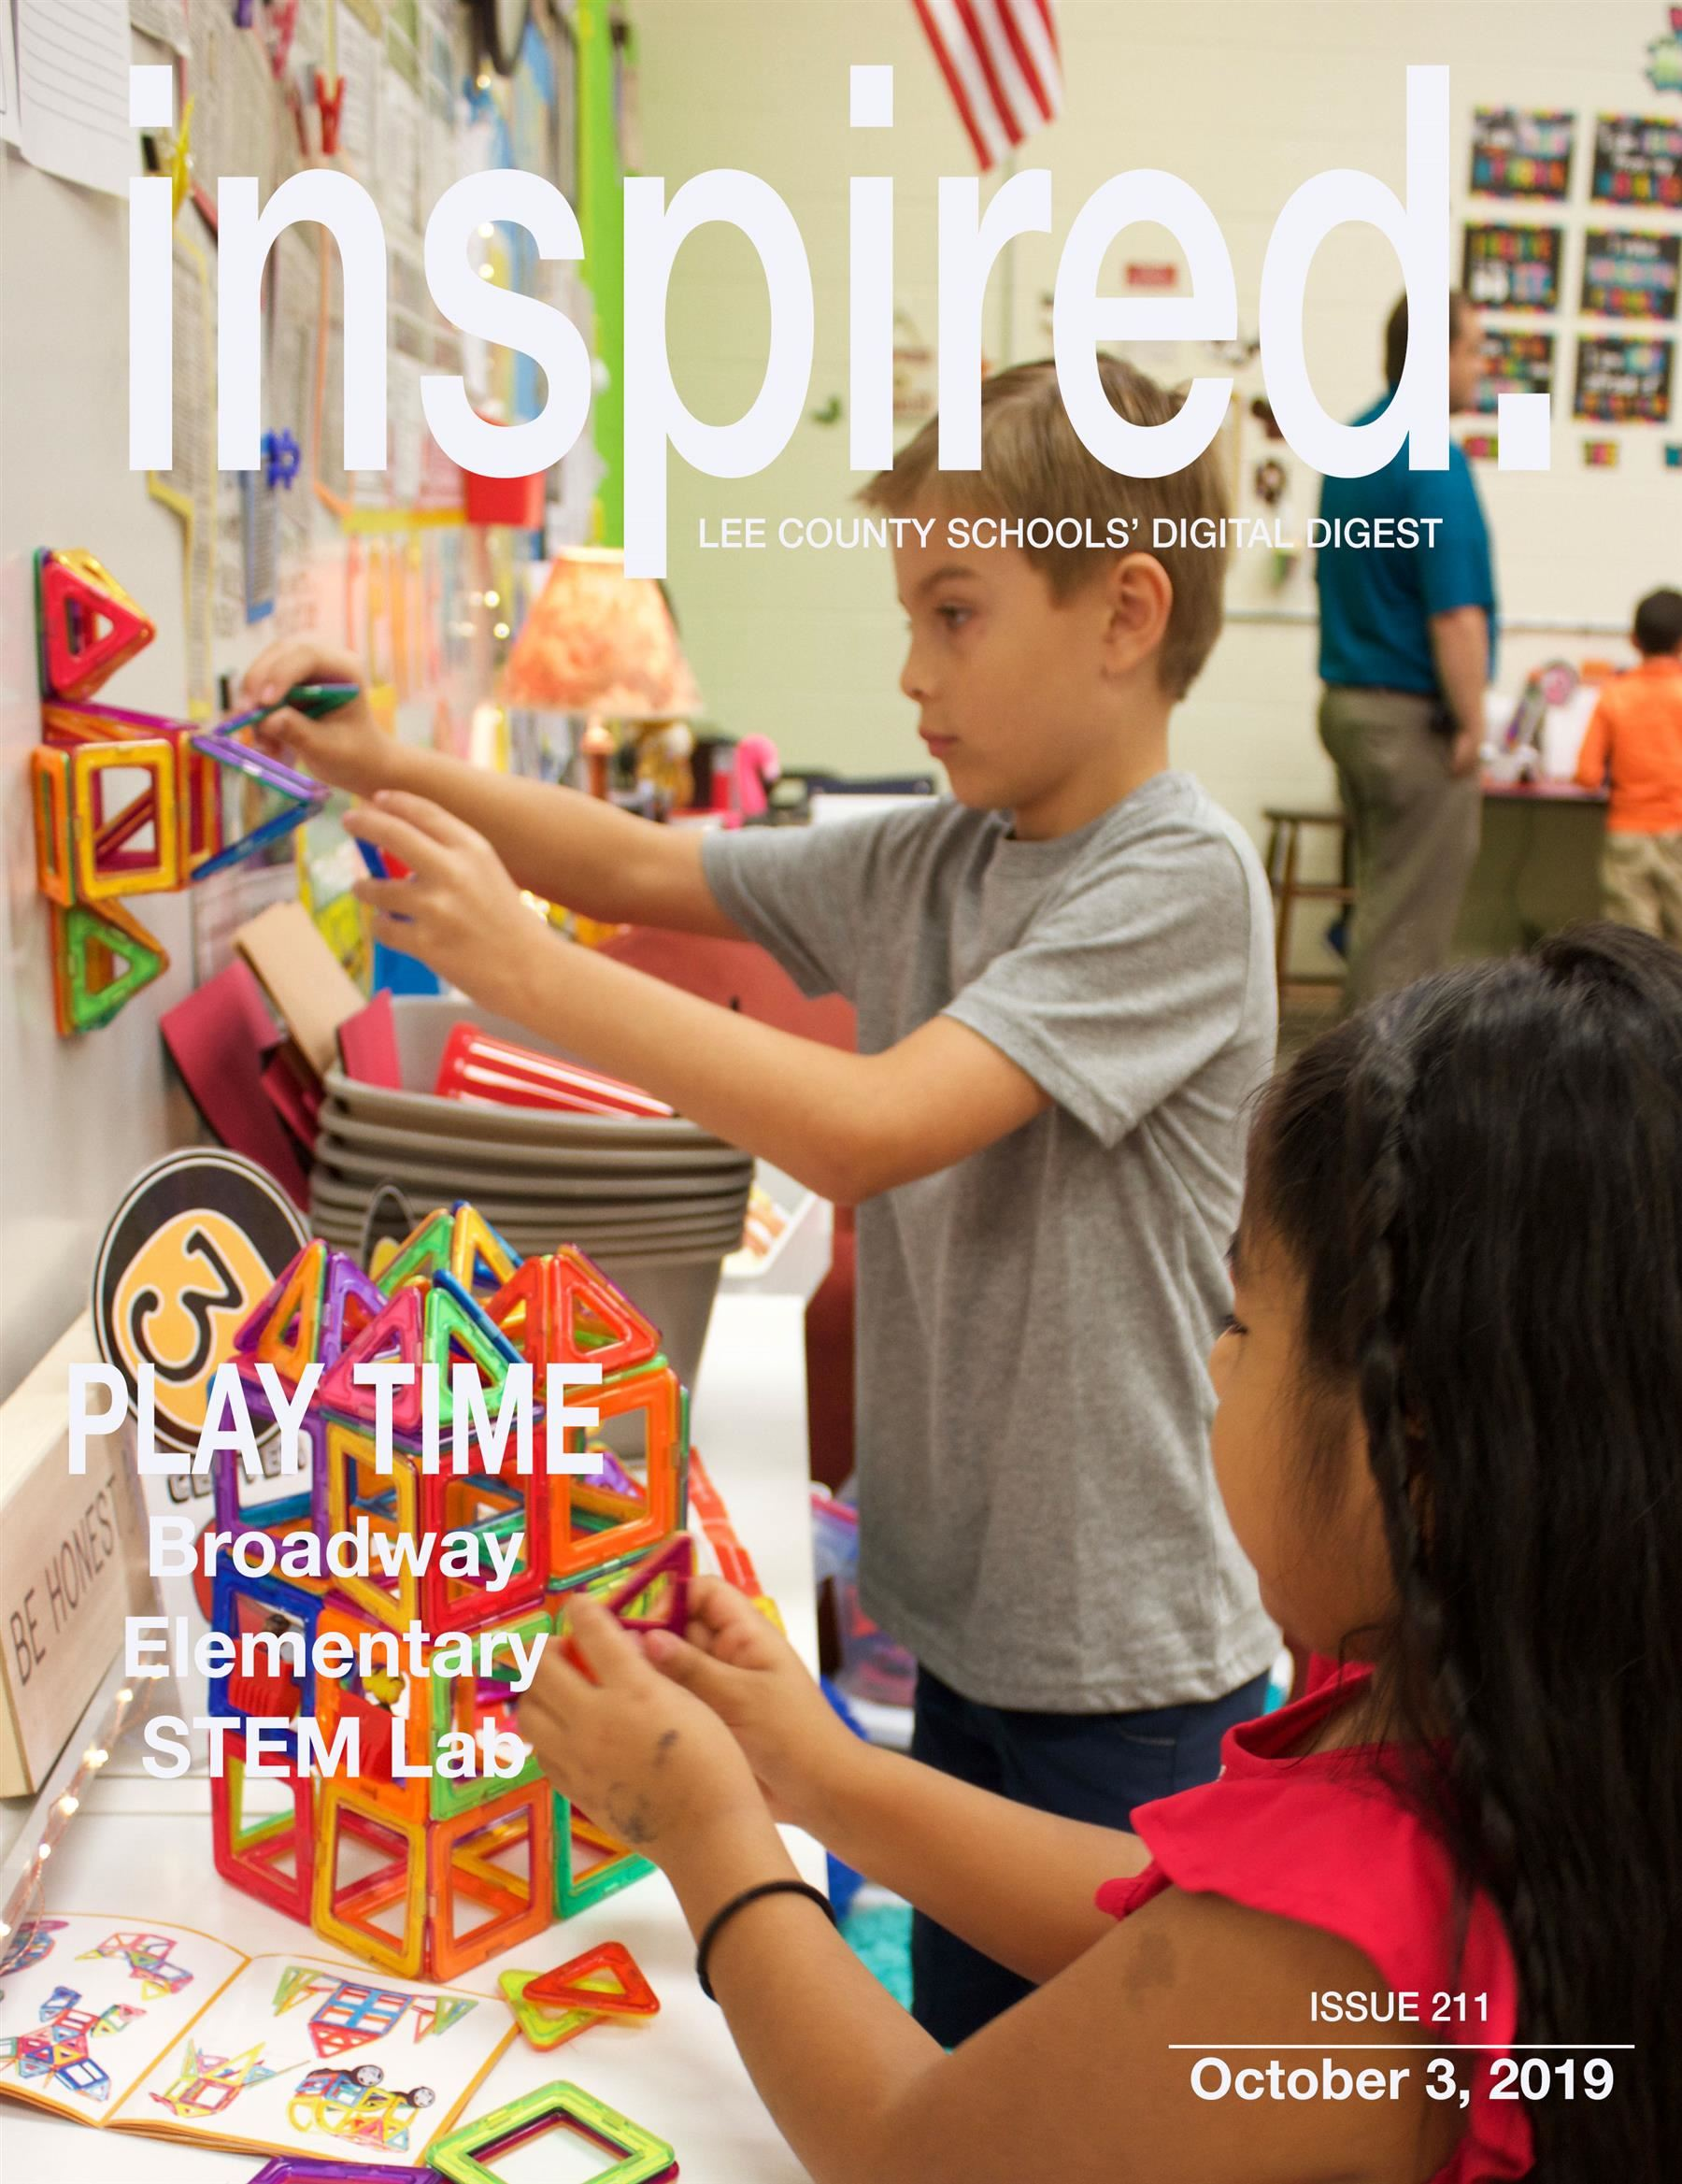 INSPIRED. PLAY TIME: Broadway Elementary STEM Lab